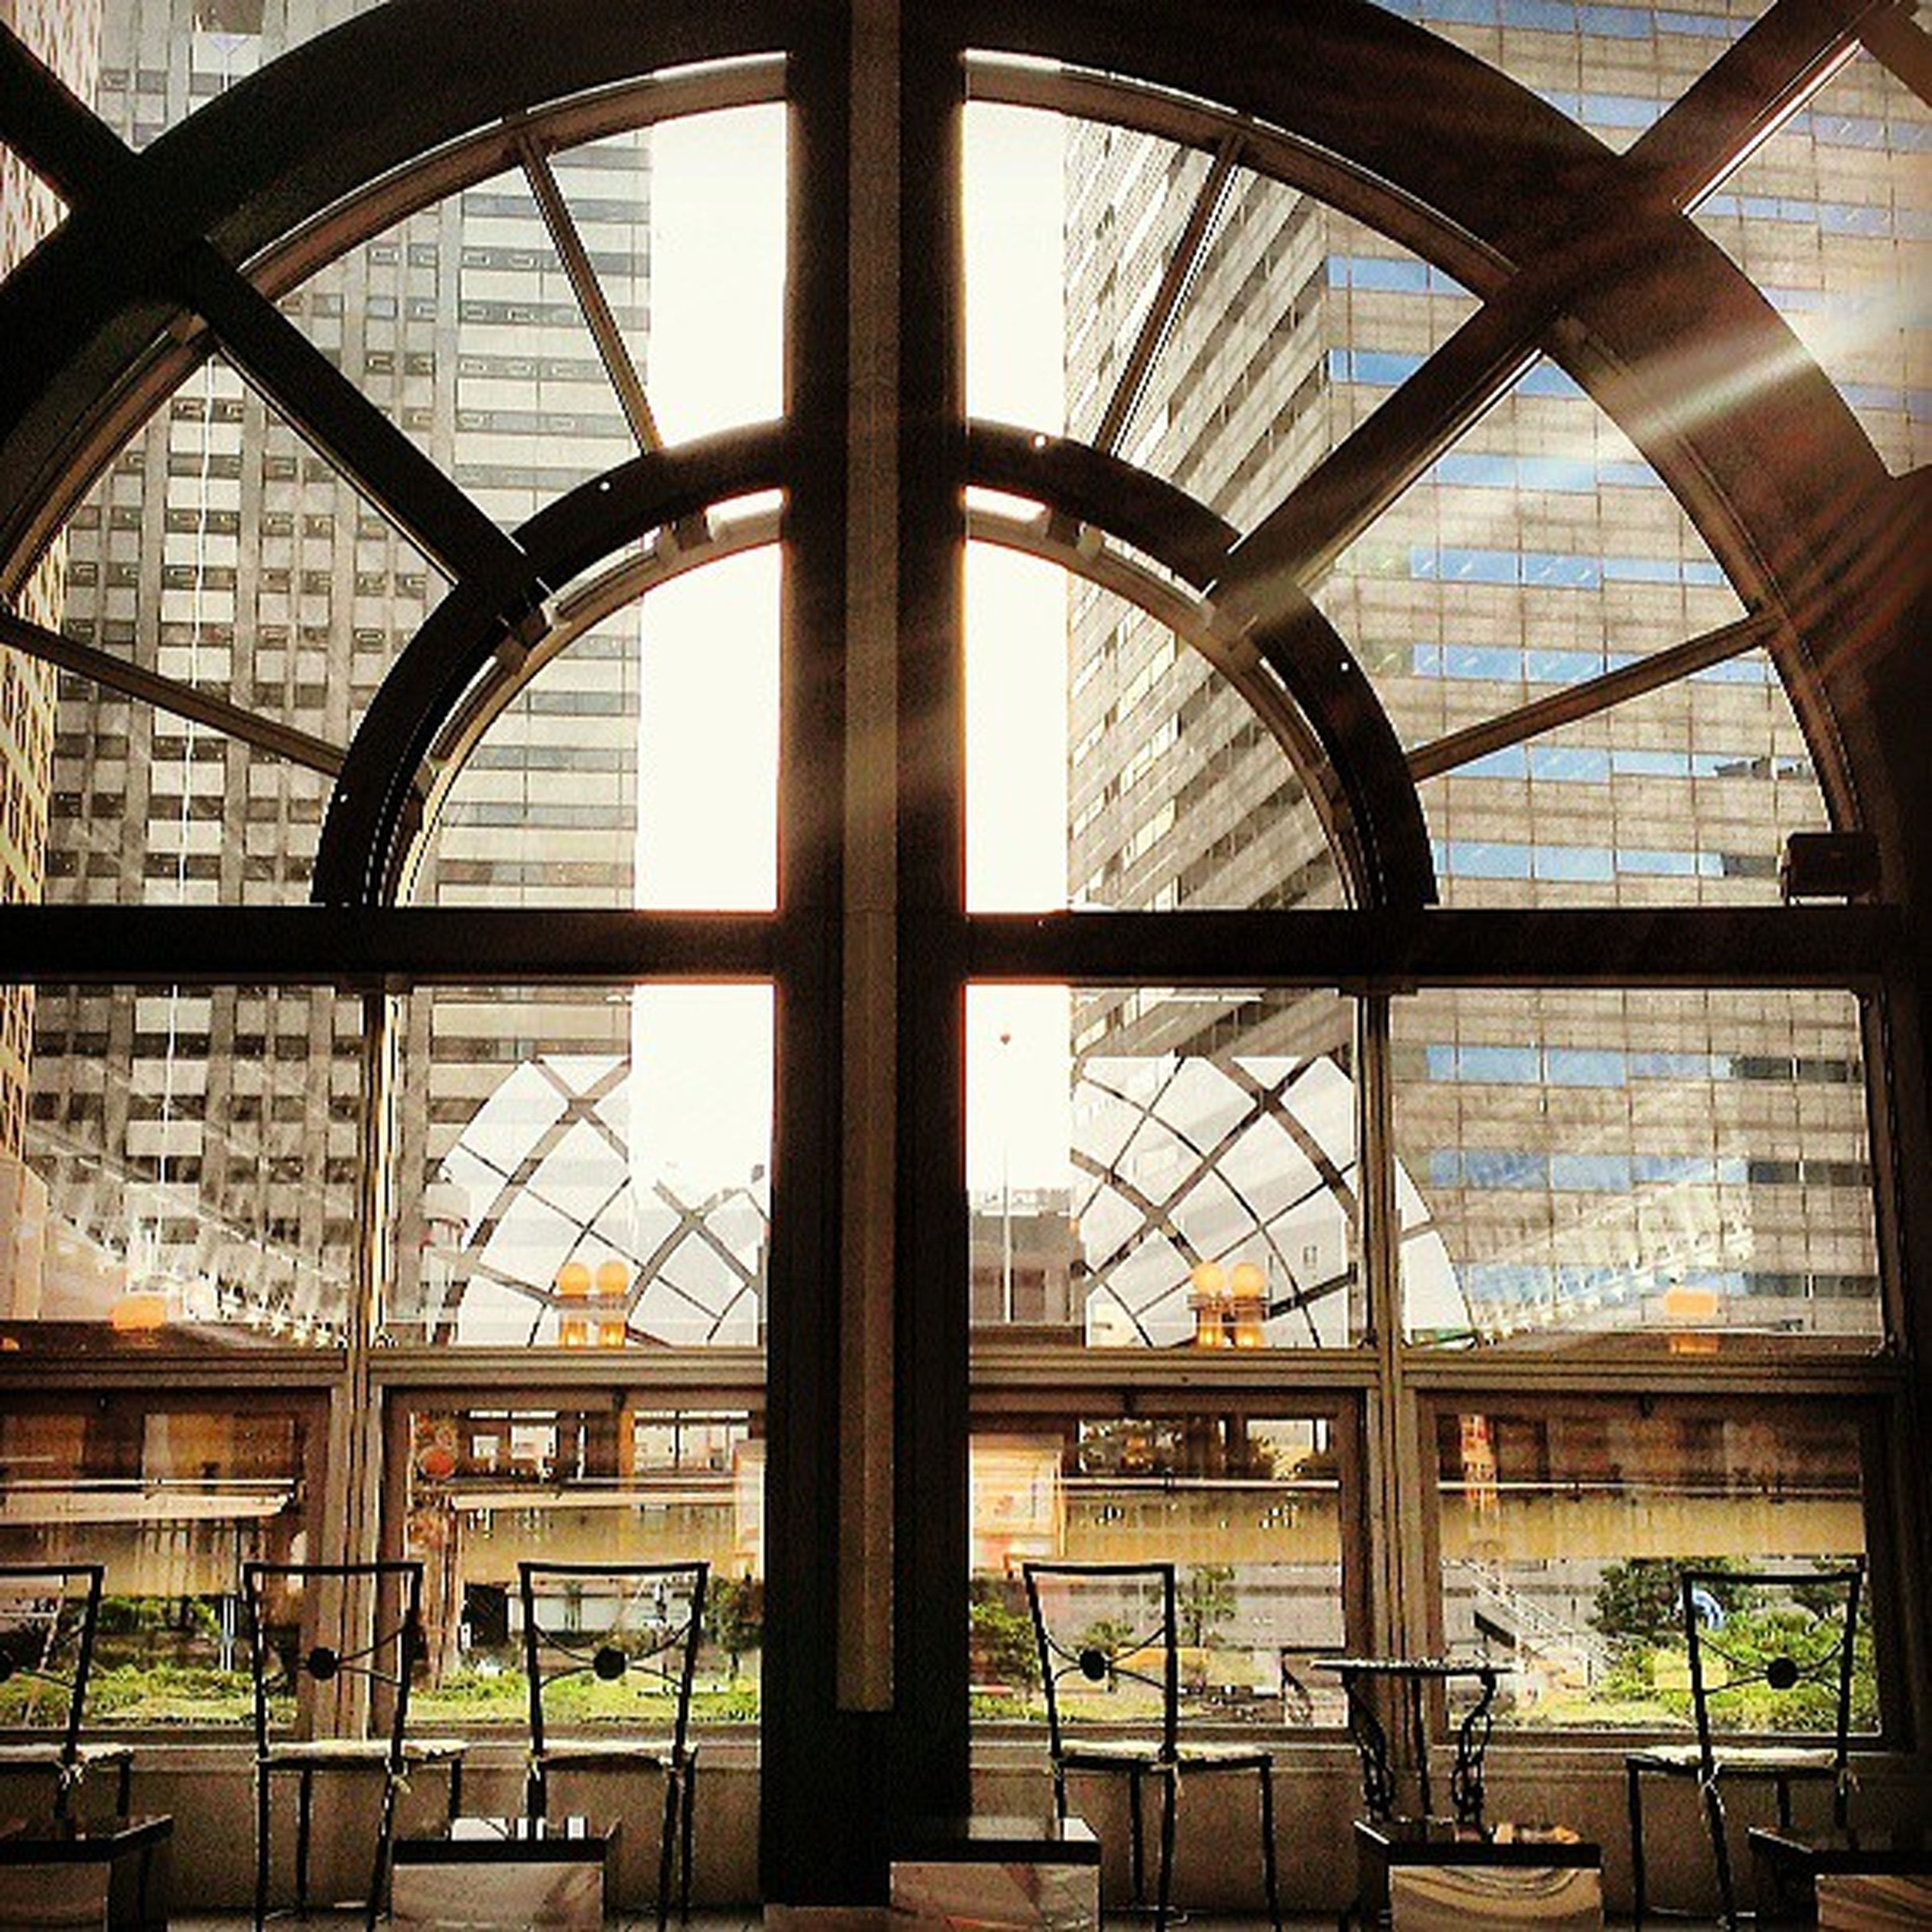 indoors, architecture, built structure, window, glass - material, ceiling, interior, skylight, day, transparent, arch, building exterior, no people, metal, low angle view, building, sky, architectural feature, geometric shape, pattern